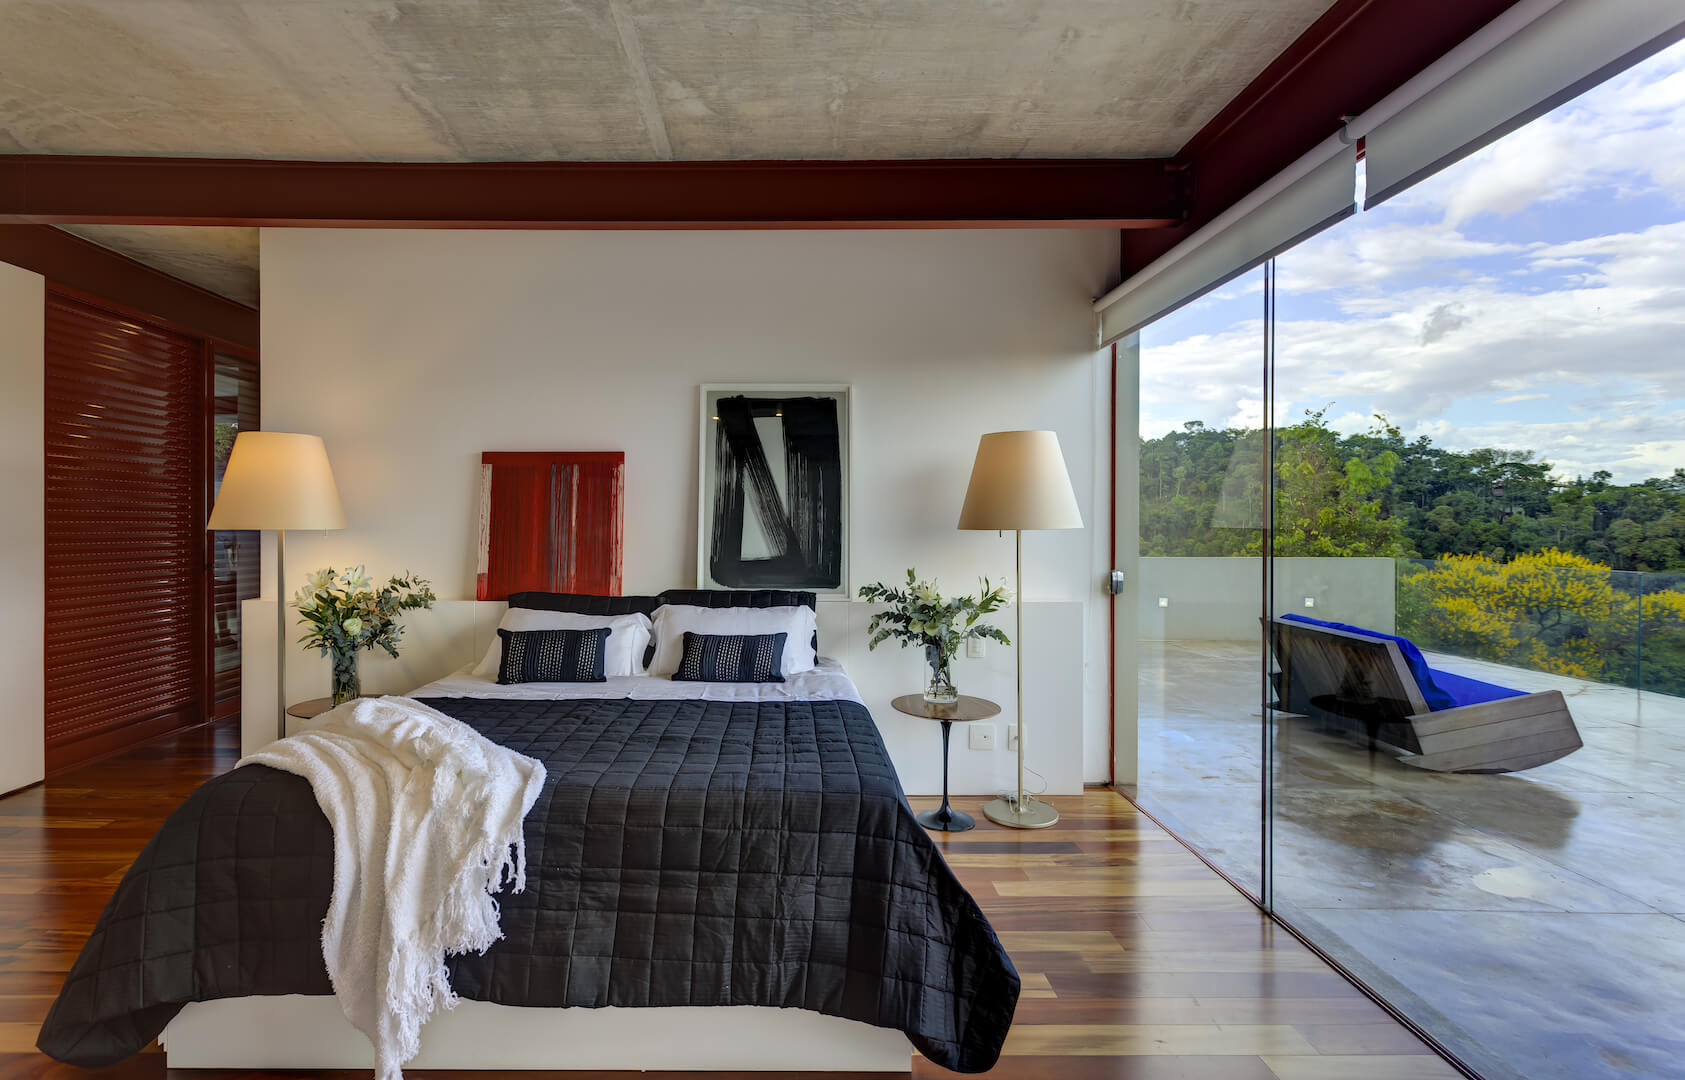 Primary bedroom suite on upper floor continues the natural hardwood flooring, with more art pieces standing on built-in wall shelf. Seamless glass door slides open to private balcony space with blue cushioned wooden rocking sofa.